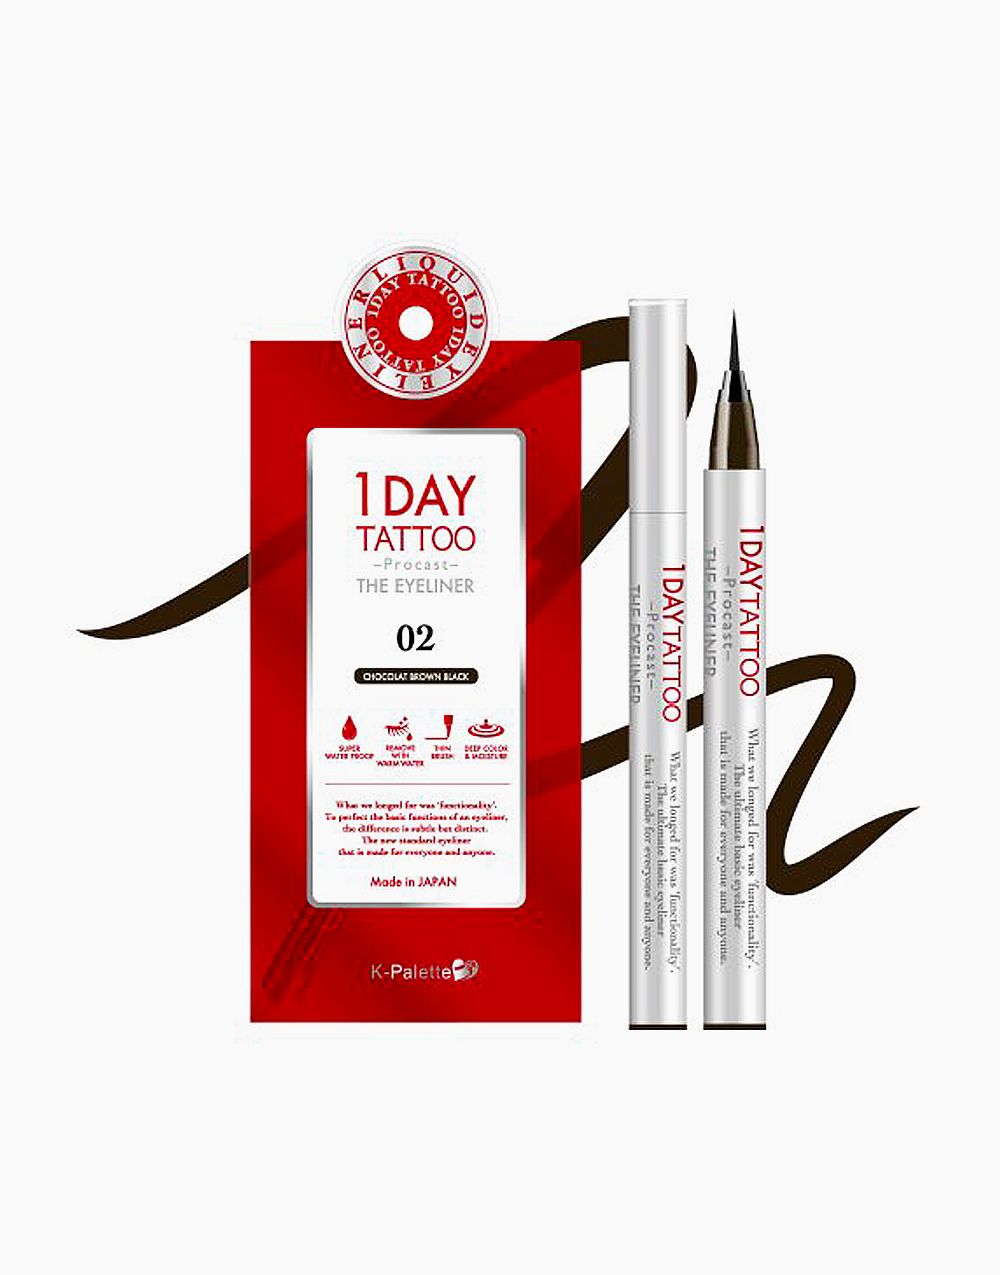 1Day Tattoo Procast the Eyeliner by K-Palette | Chocolate Brown Black 02